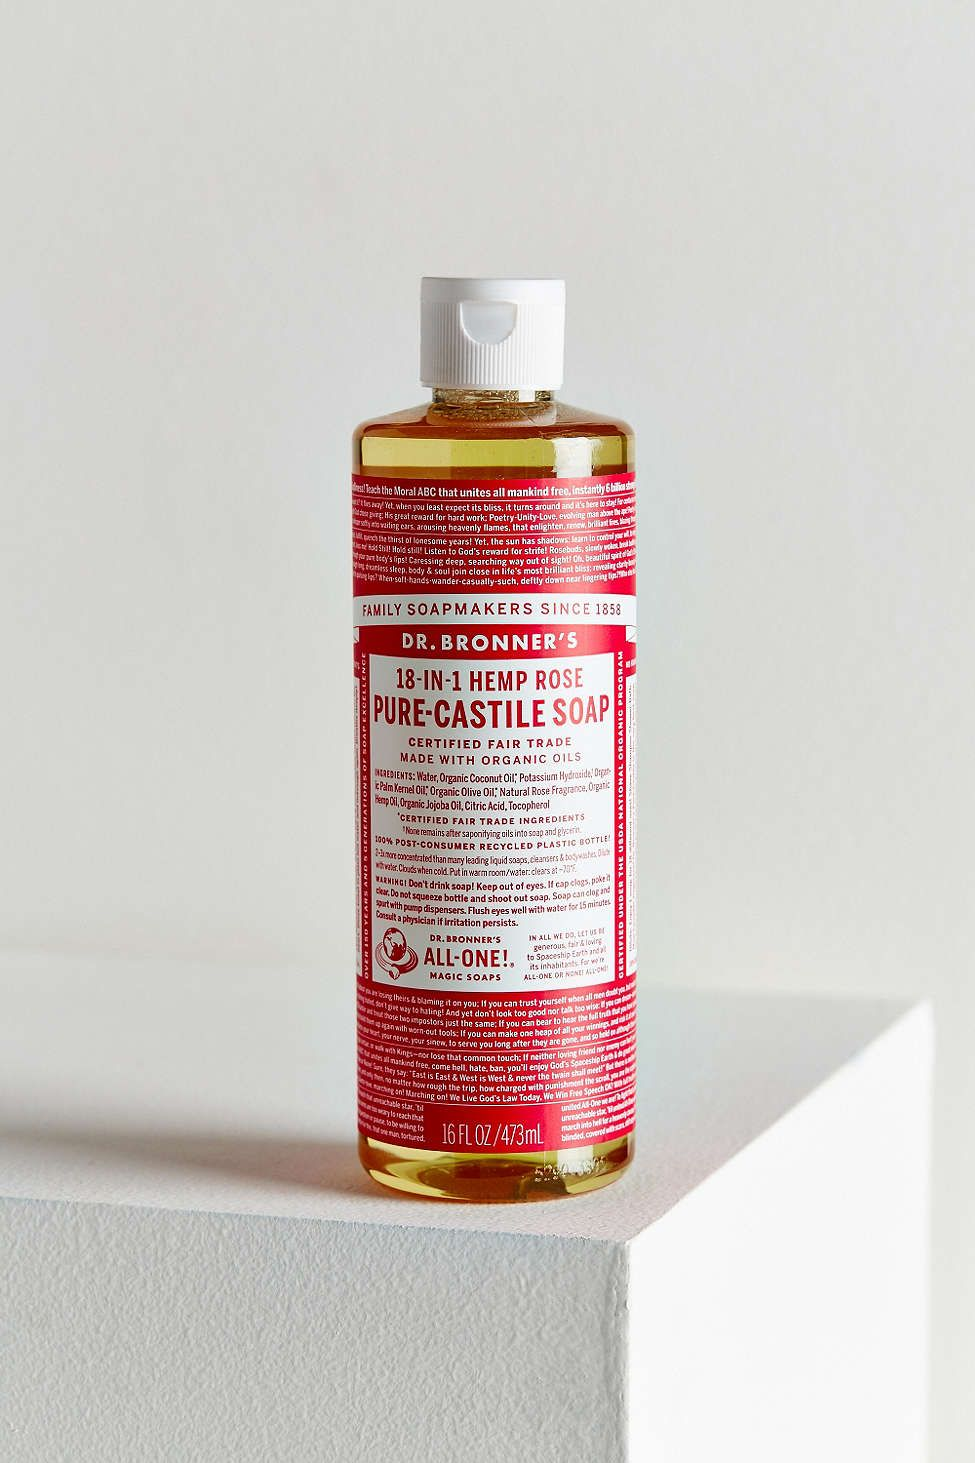 Dr. Bronner's Pure-Castile Large Liquid Soap - ROSE - I use this as body wash and diluted as a soap for the tiled bathroom floor (thanks to Martha Stewart!)